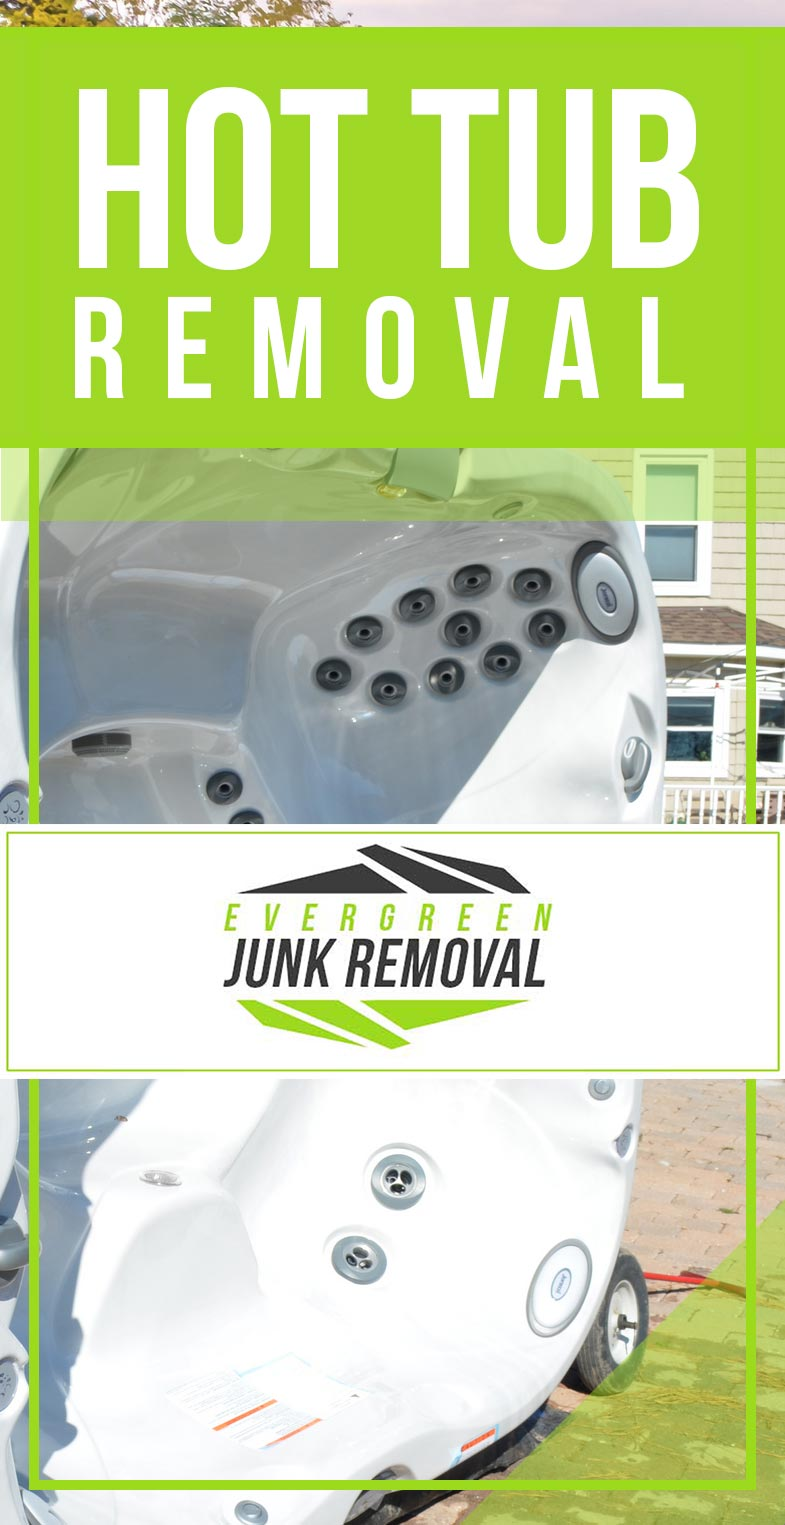 Minneapolis Hot Tub Removal